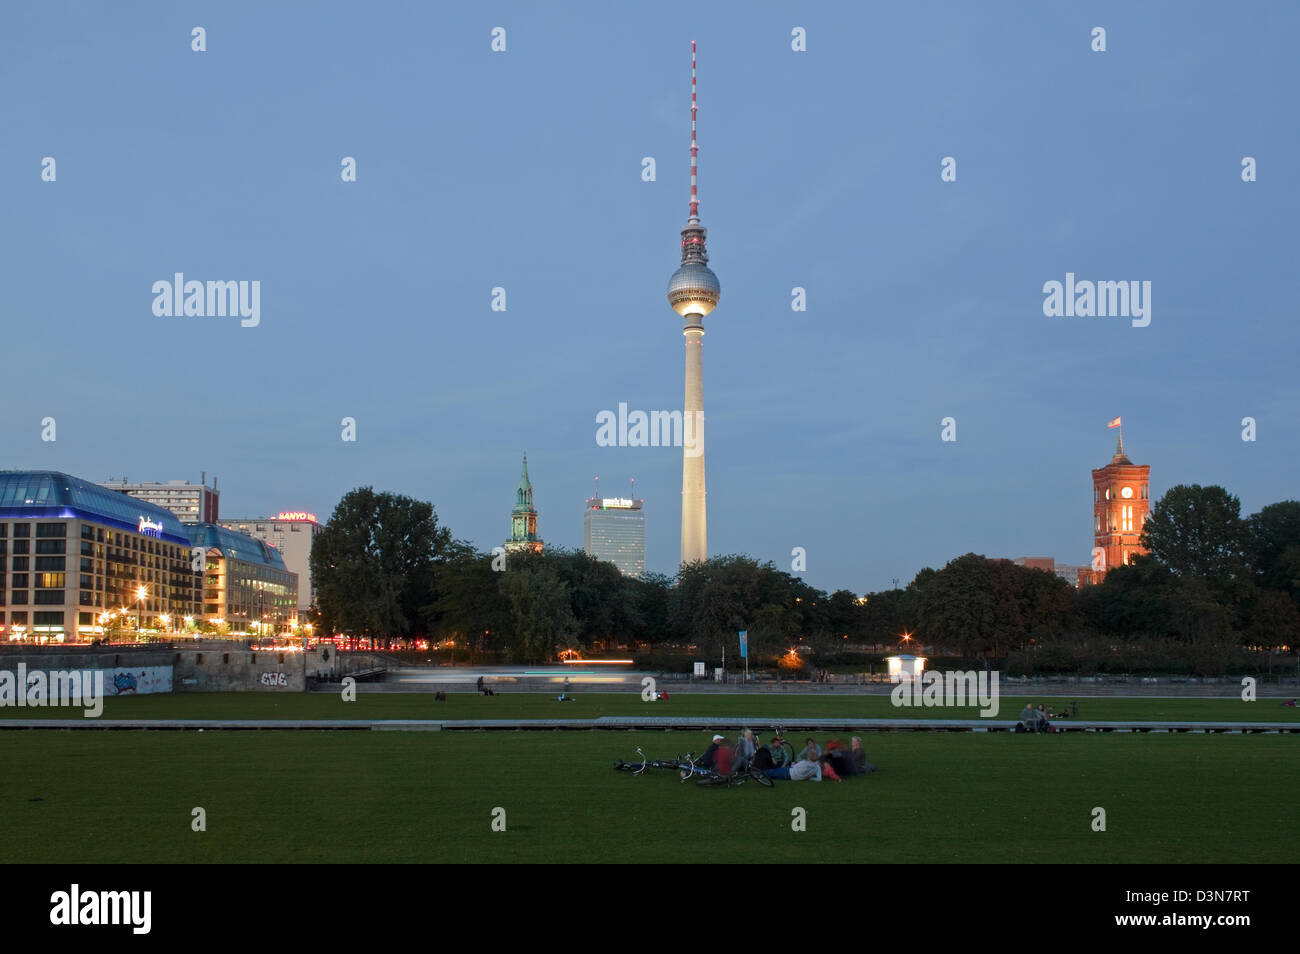 Berlin, Germany, View from Castle Square towards Alexanderplatz at night - Stock Image